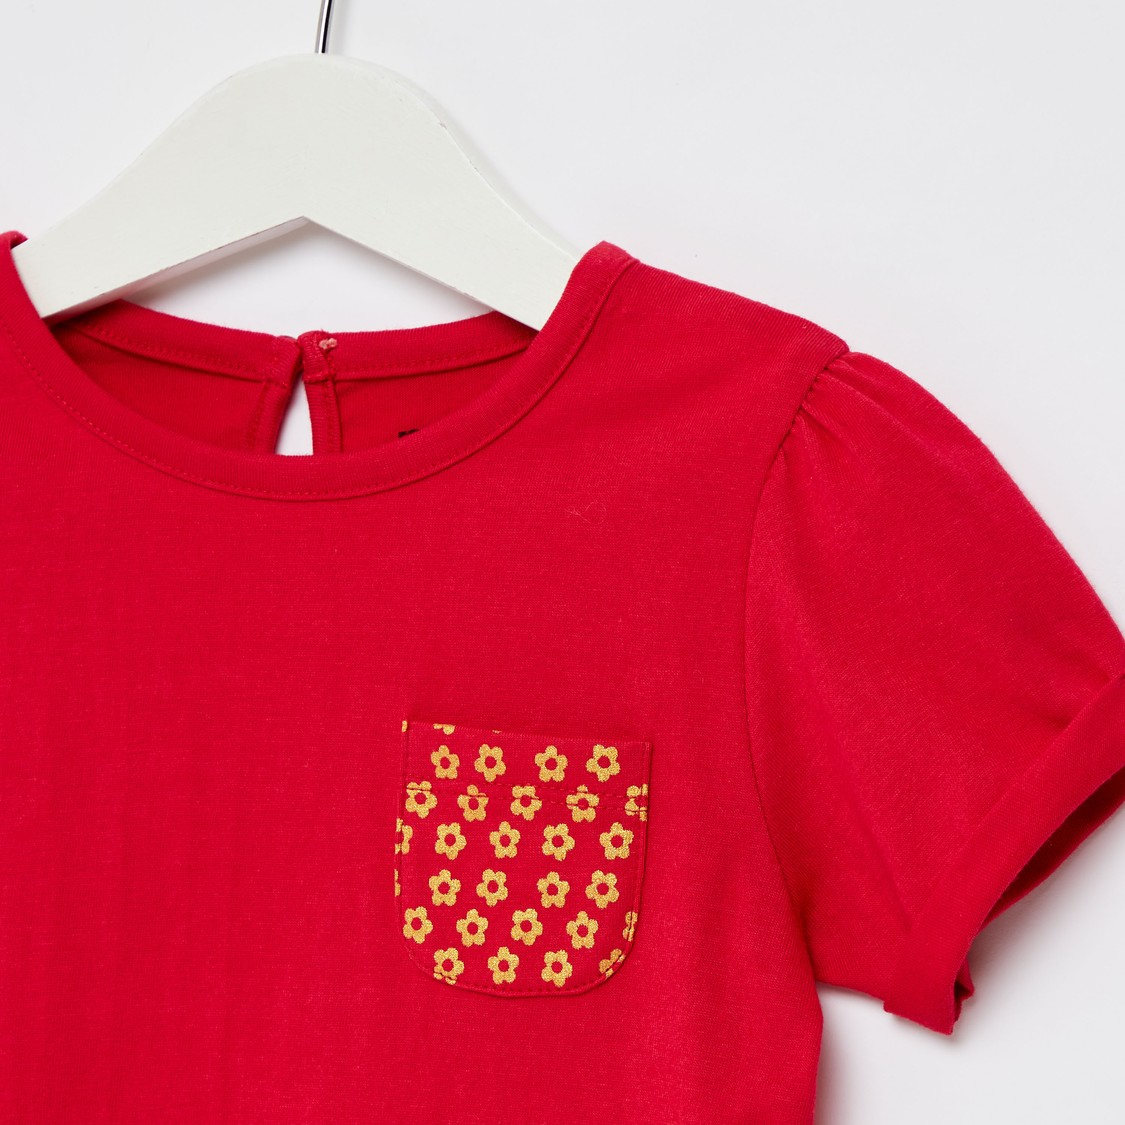 T-shirt with Round Neck and Printed Patch Pocket